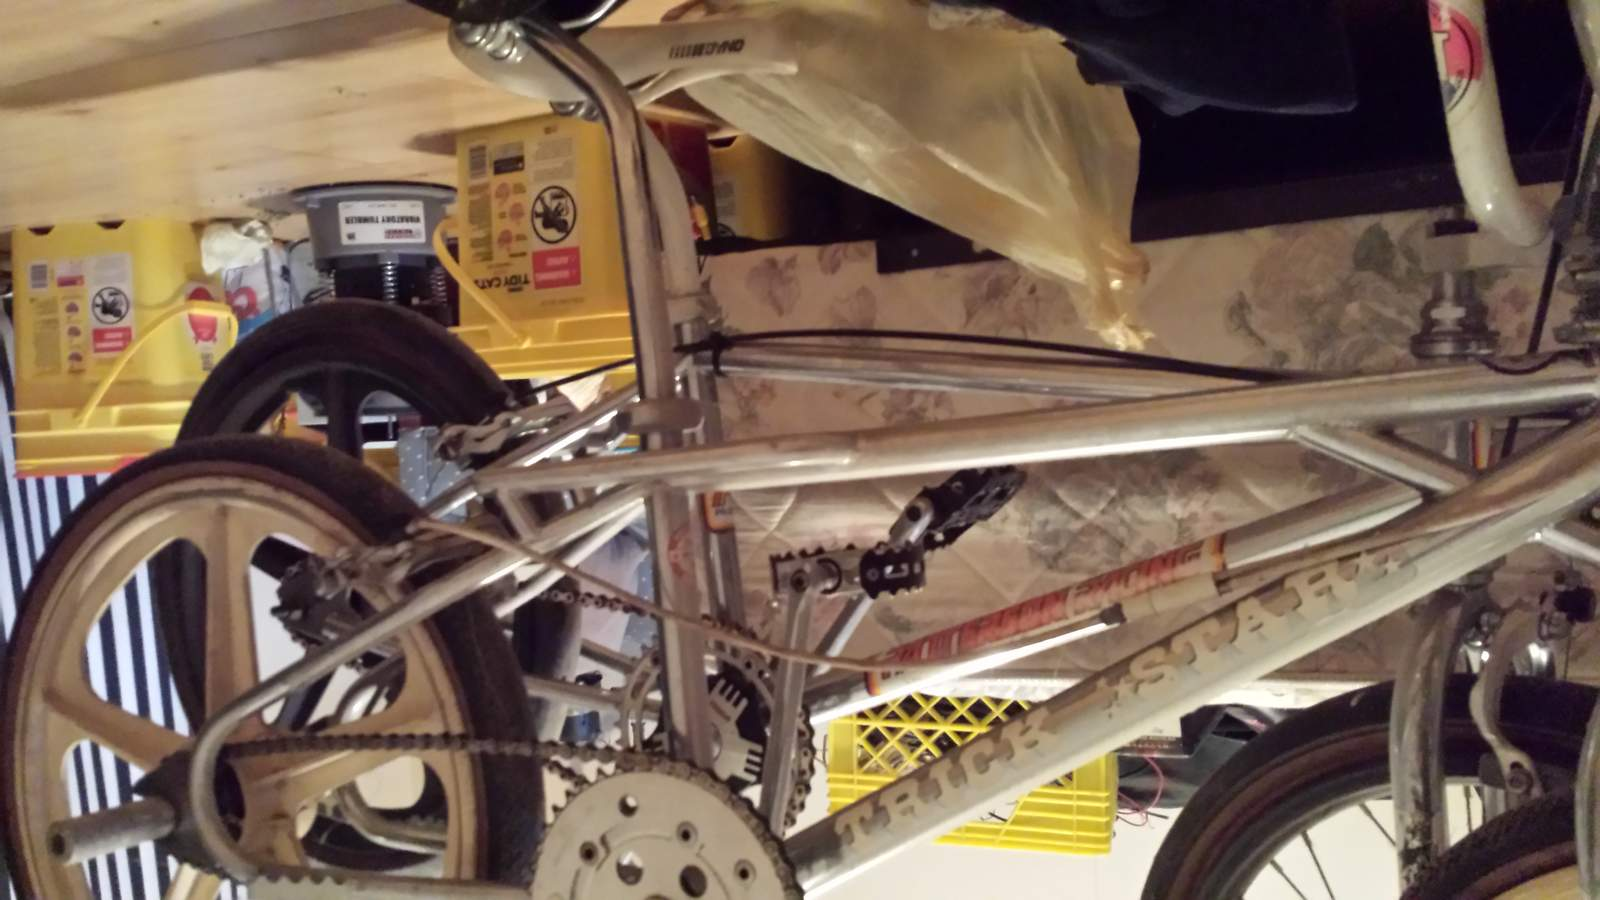 http://uploads.bmxmuseum.com/user-images/210357/20160828_18384557c381c421.jpg